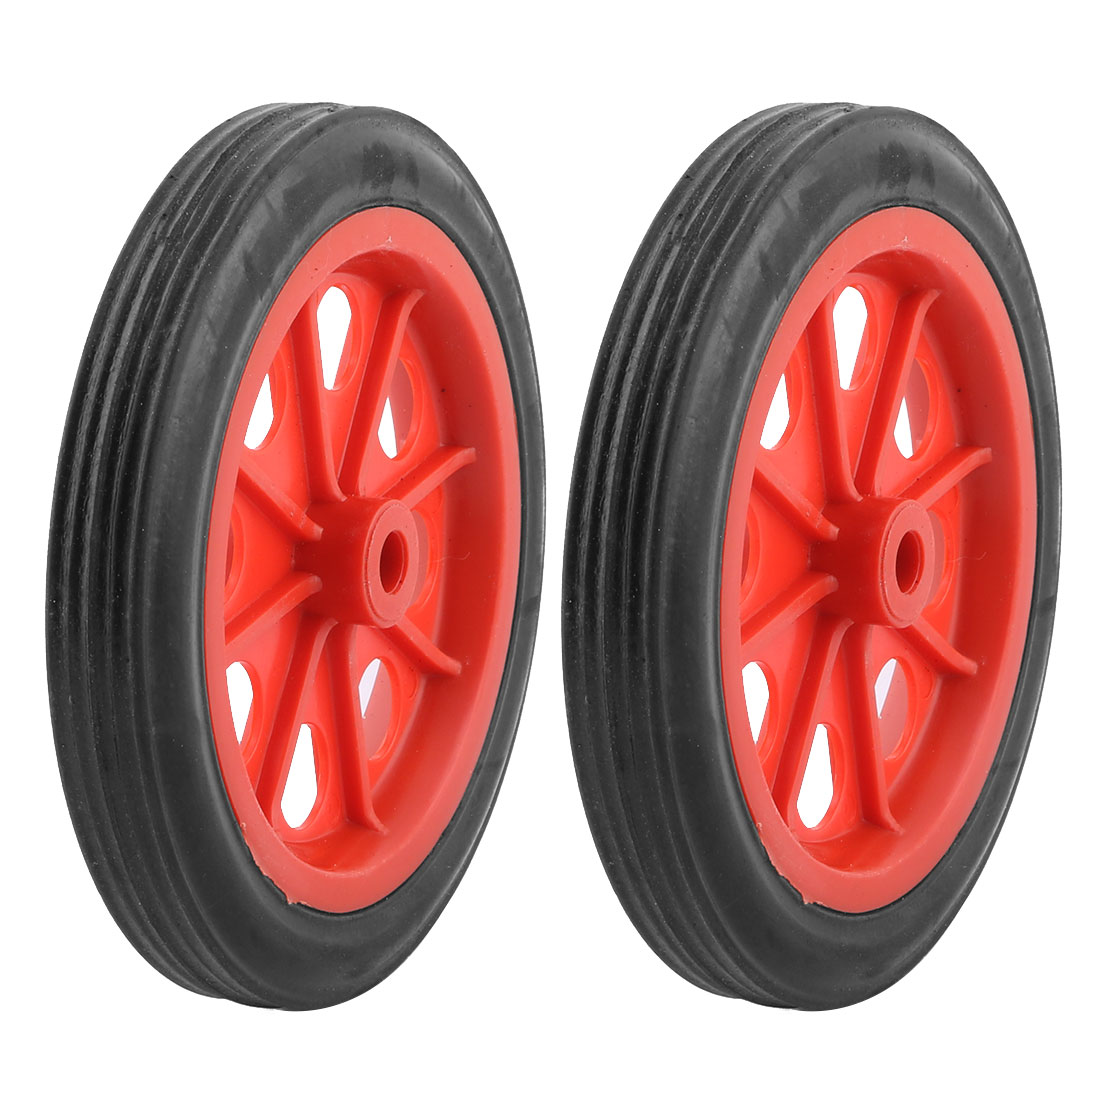 "2 Pcs Replaceable Shopping Basket Cart 4.4"" Wheels Red Black"